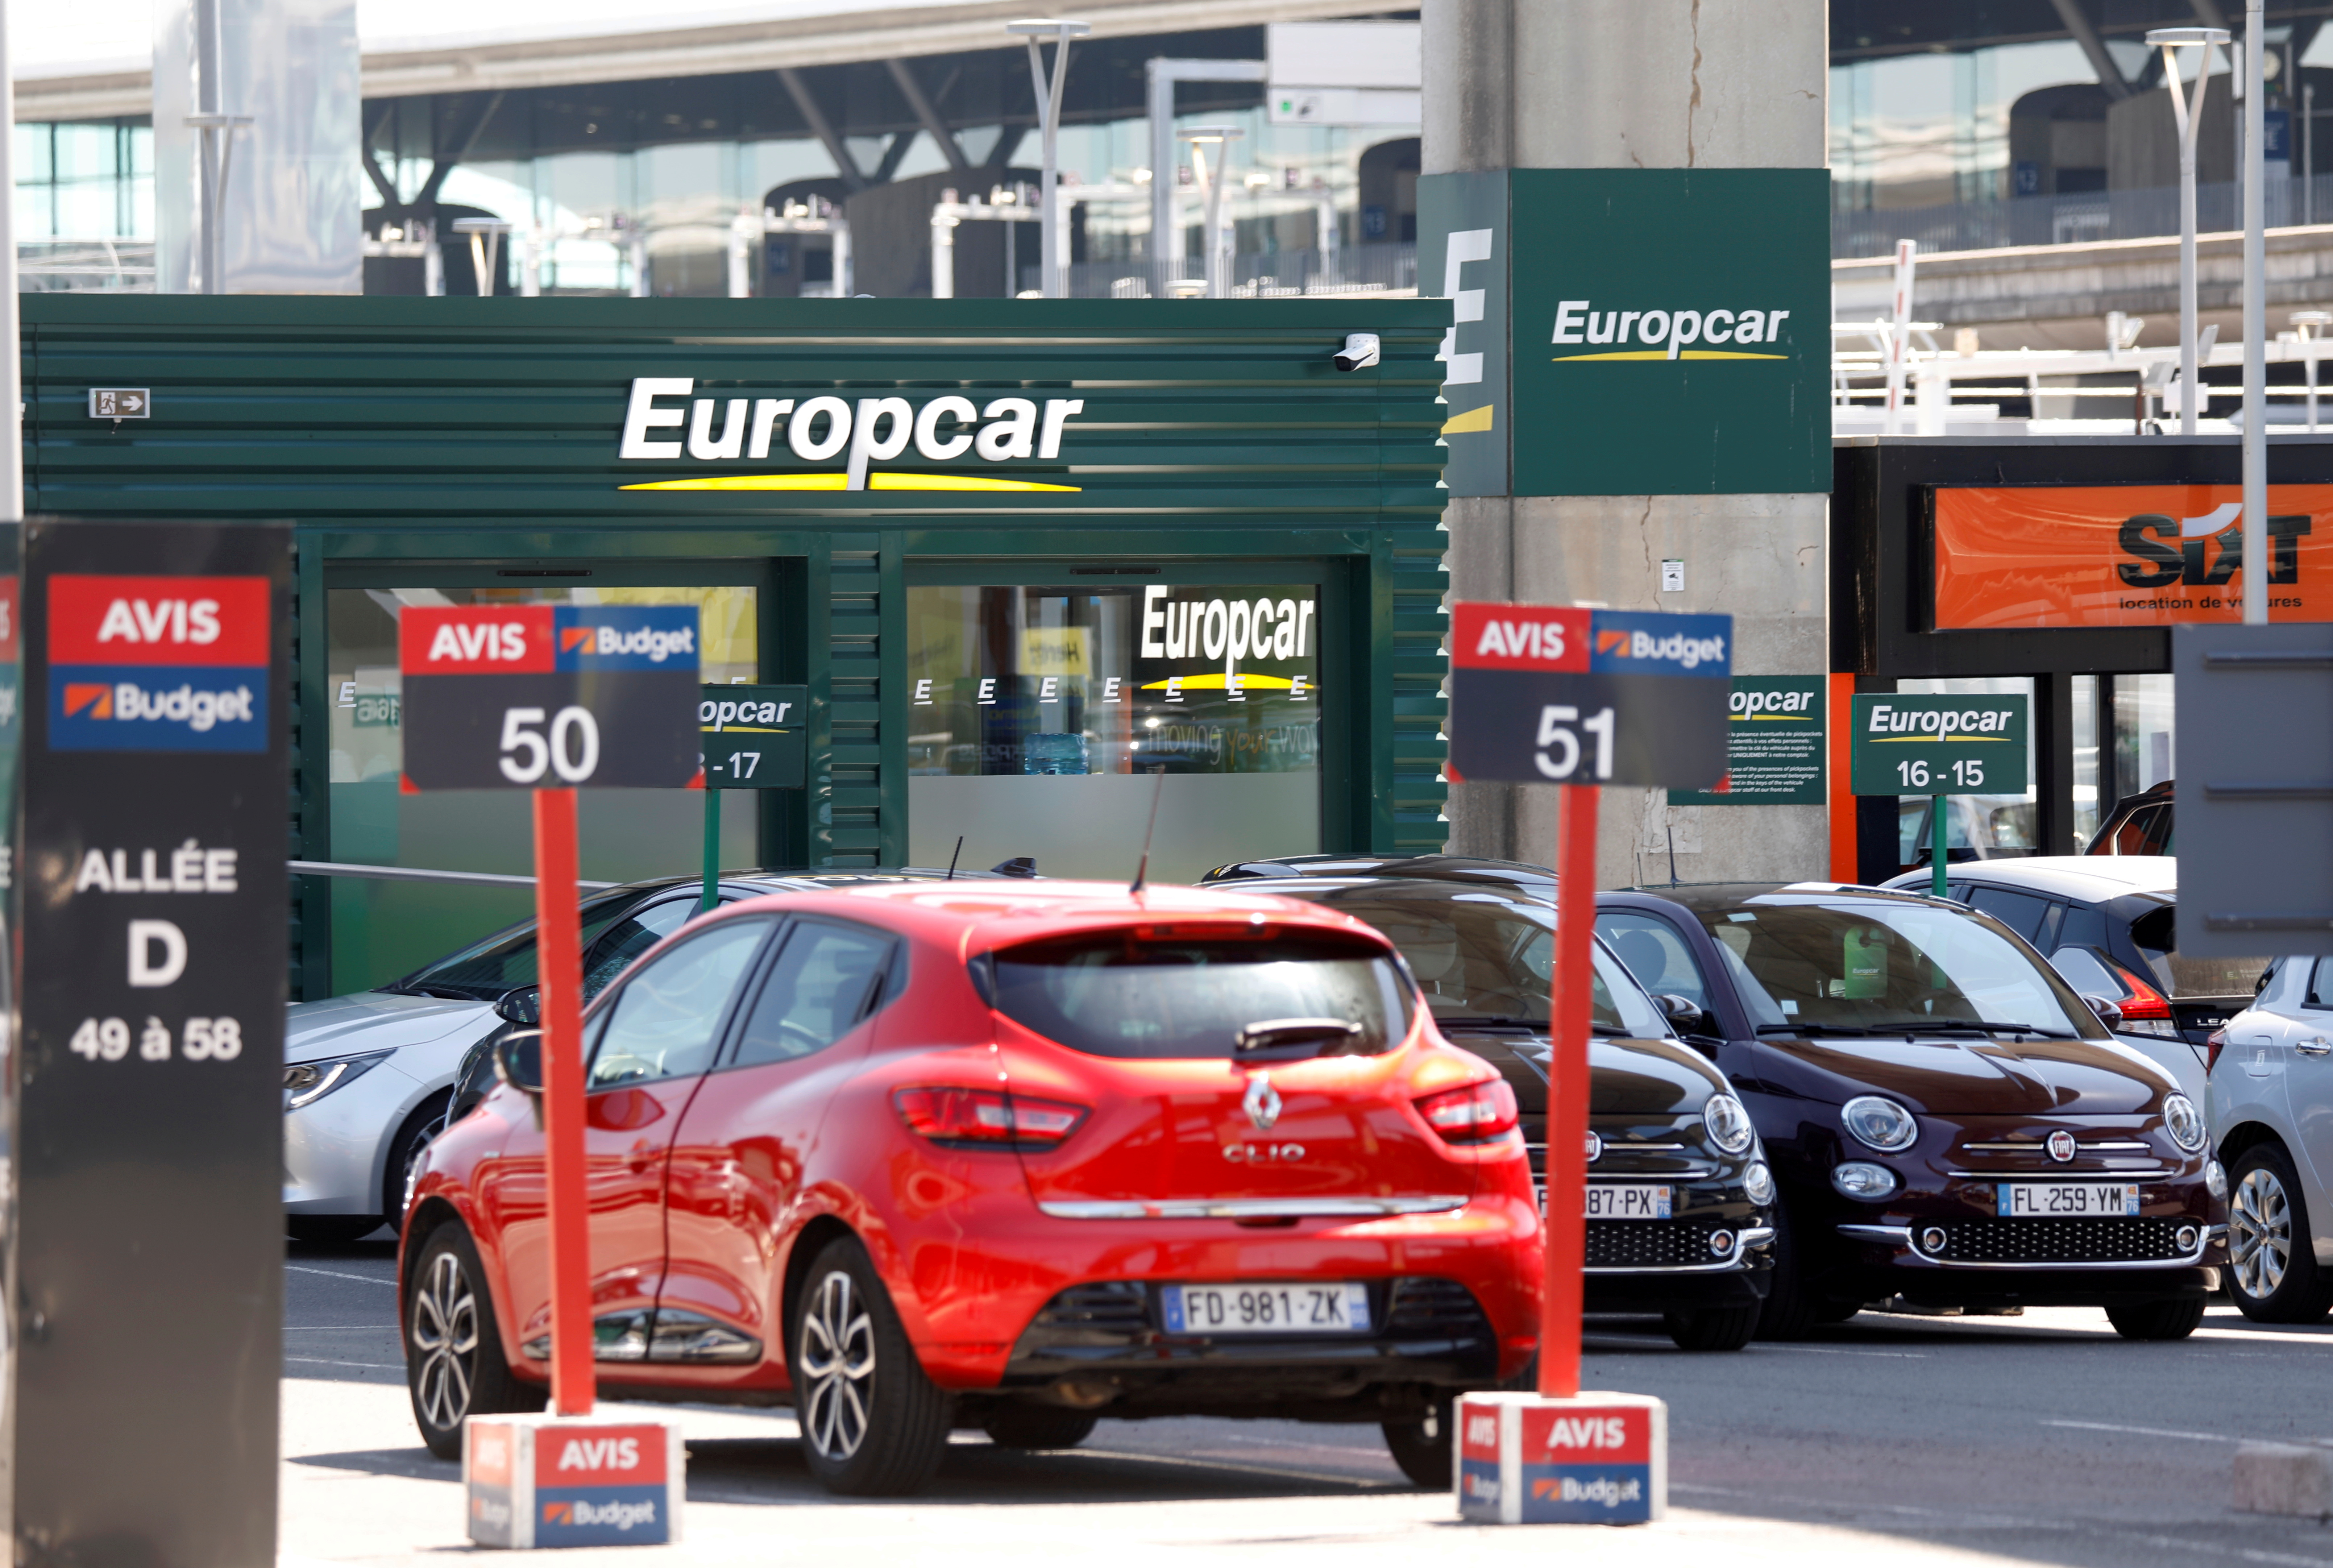 Cars are seen at car rental companies Avis and Europcar outside Paris Charles de Gaulle airport in Roissy-en-France during the outbreak of the coronavirus disease (COVID-19) in France May 19, 2020. REUTERS/Charles Platiau/File Photo